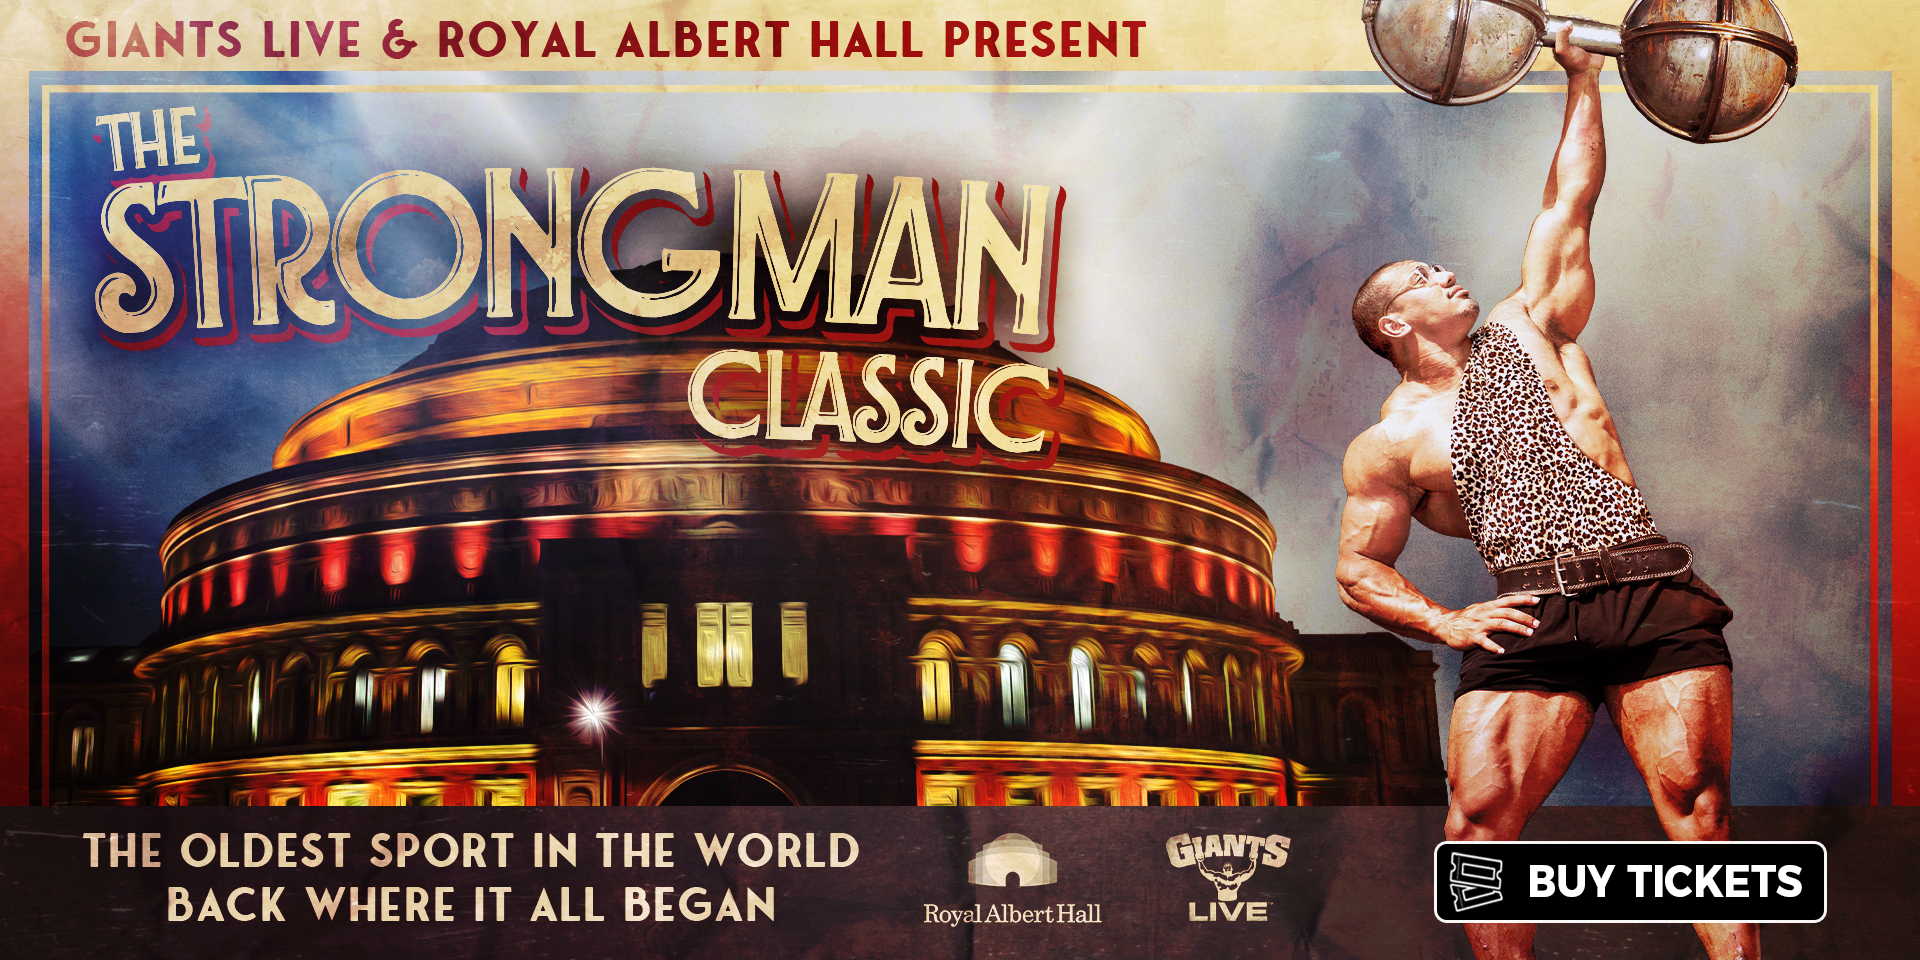 The oldest sport in the world, back where it all began! Giants Live and Royal Albert Hall present The Strongman Classic.